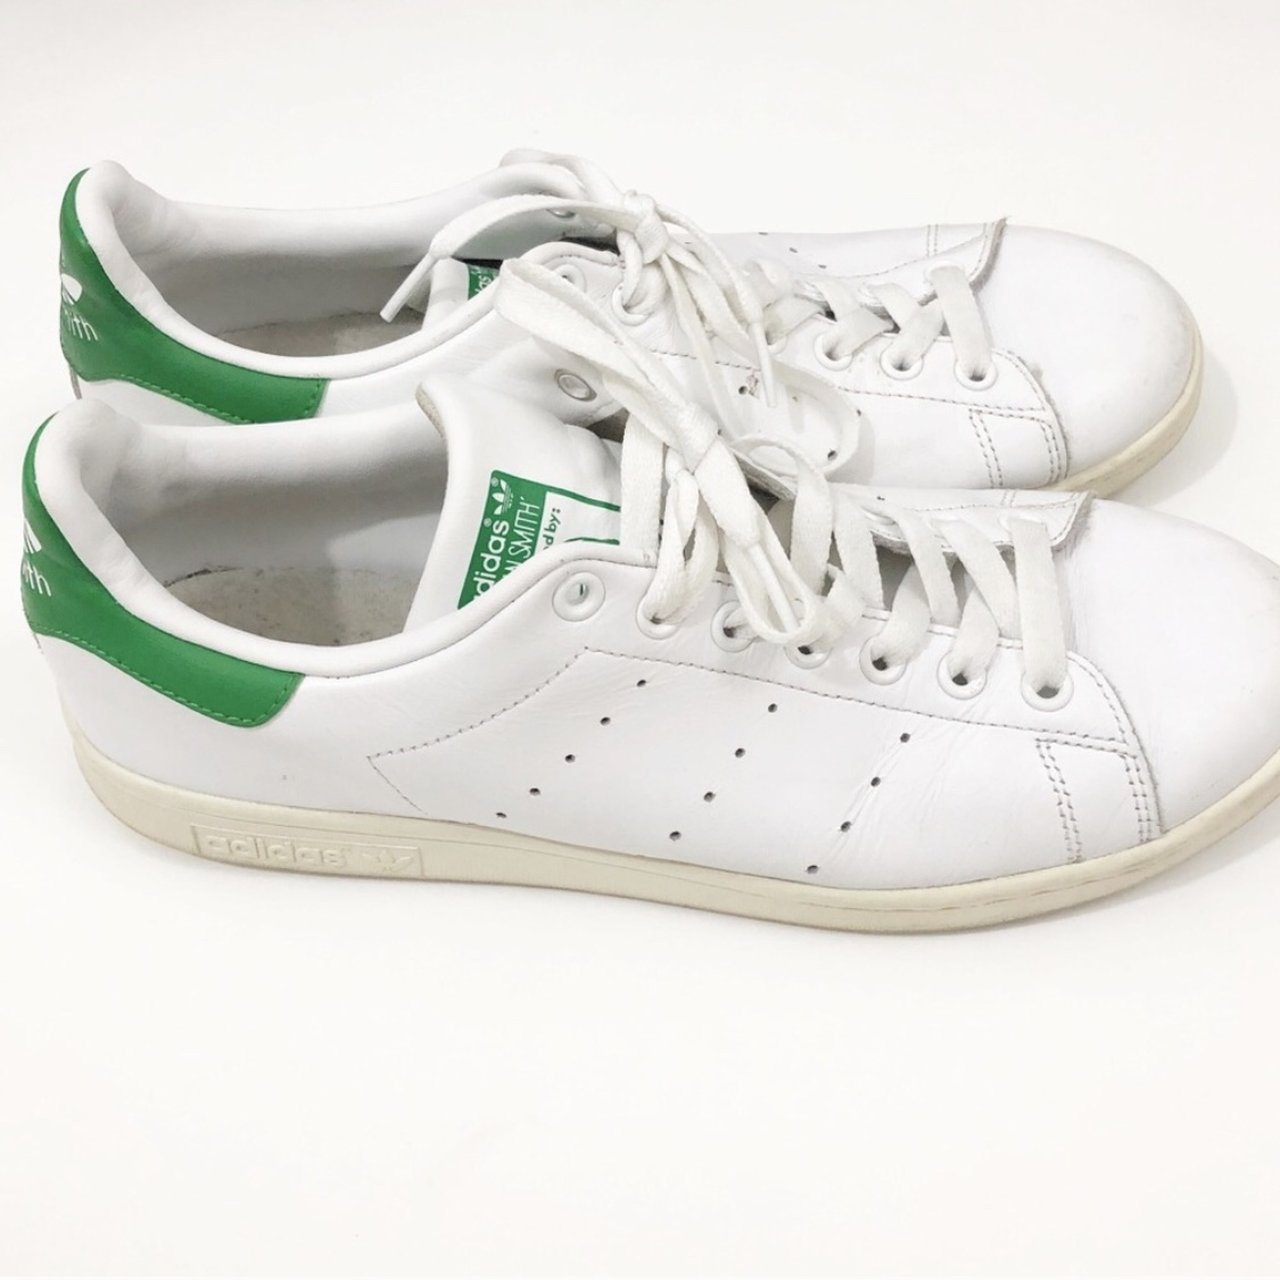 8ed46da6104 Adidas White   Green Original Stan Smith Size Men s of have - Depop